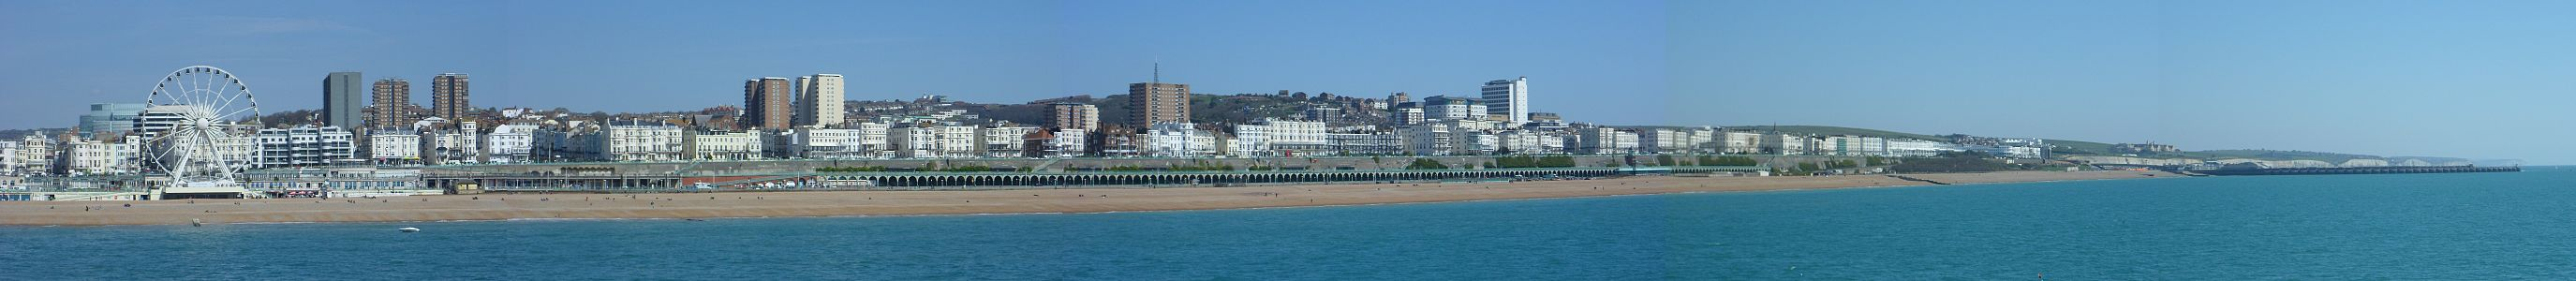 Panorama of the eastern side of Brighton seafront